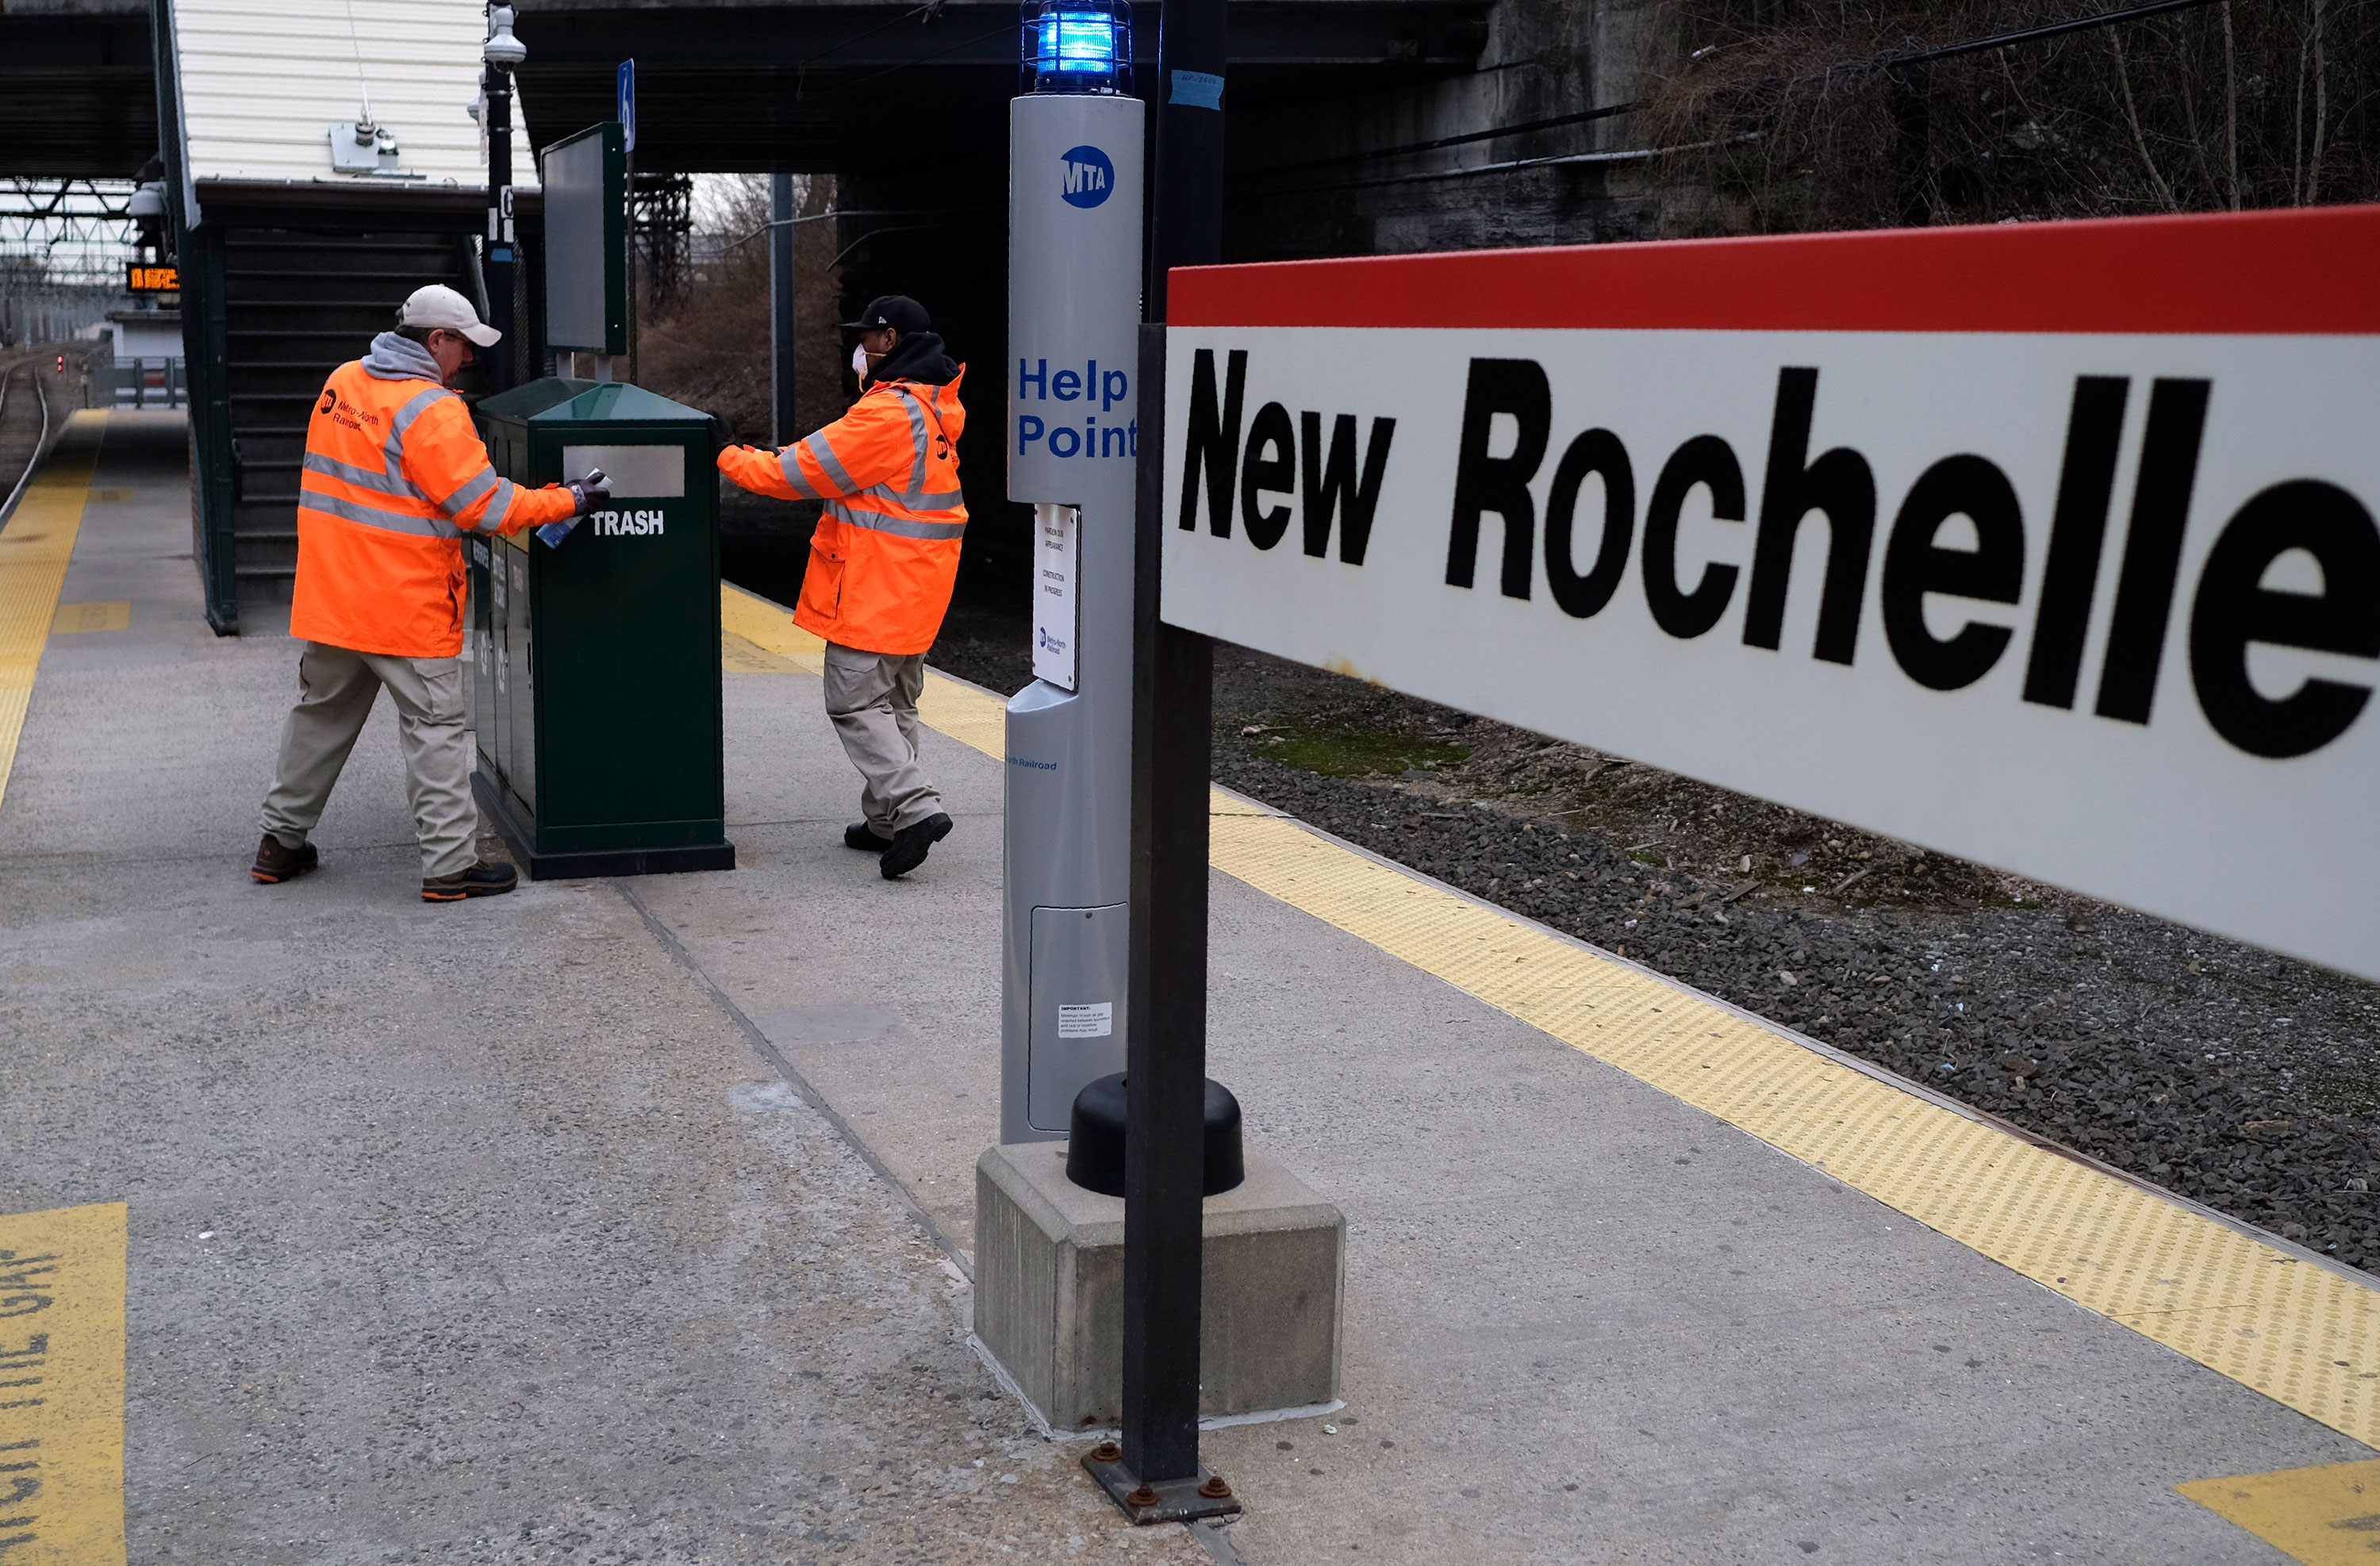 Employees of Metro-North Railroad disinfect parts of the New Rochelle Metro-North station in New Rochelle, New York, on Thursday, March 12.